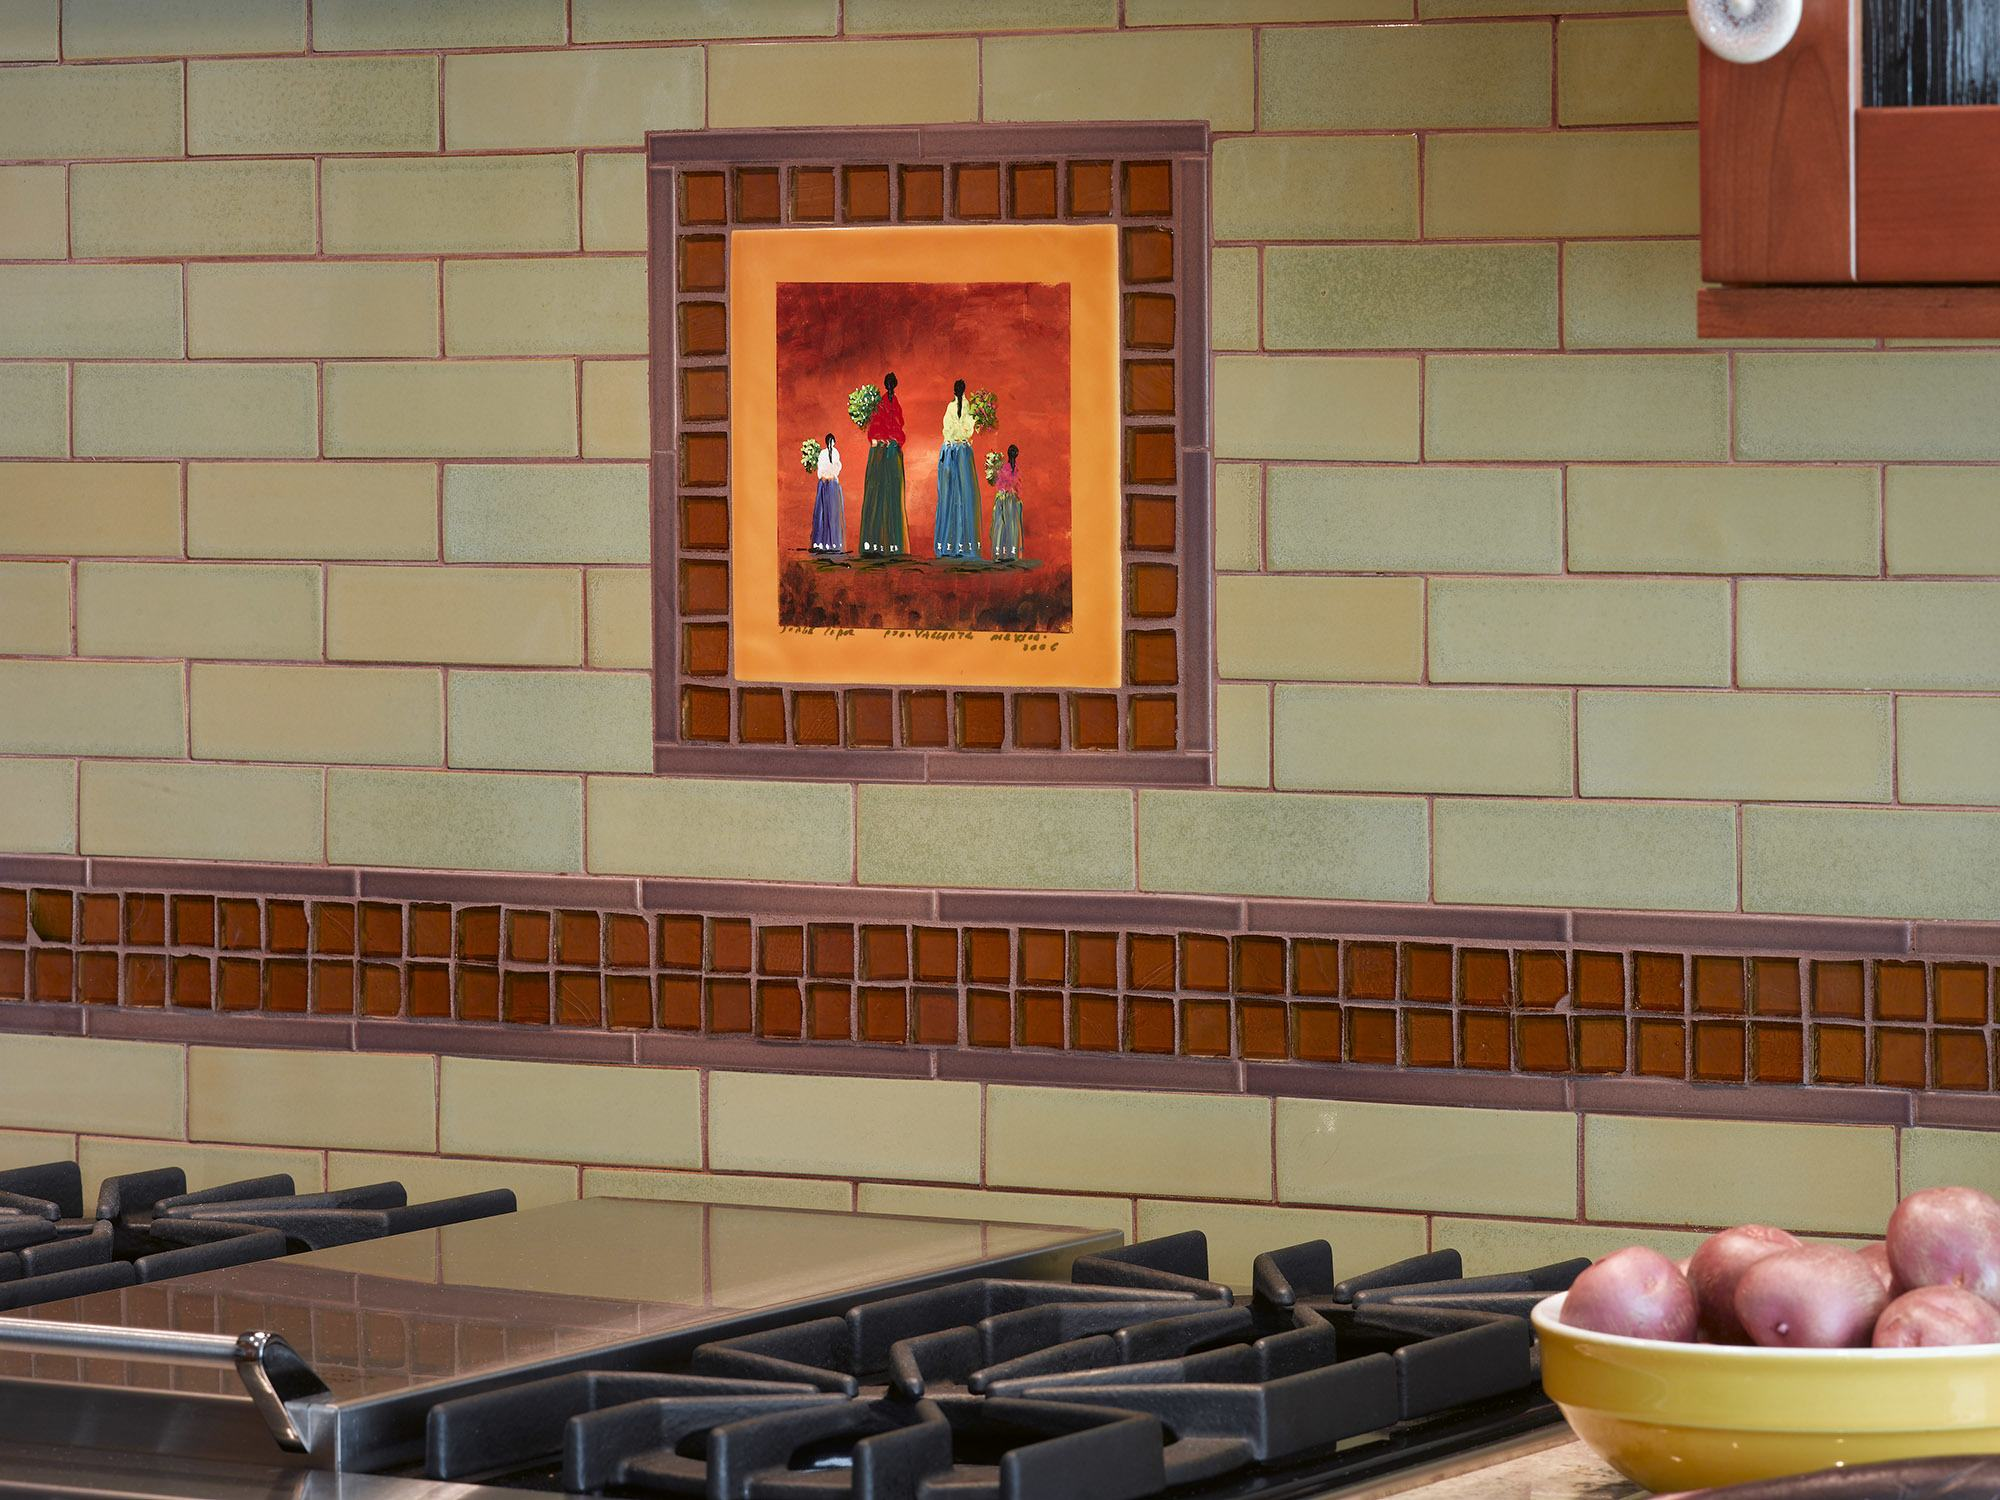 tile design kitchen tile designs tile design